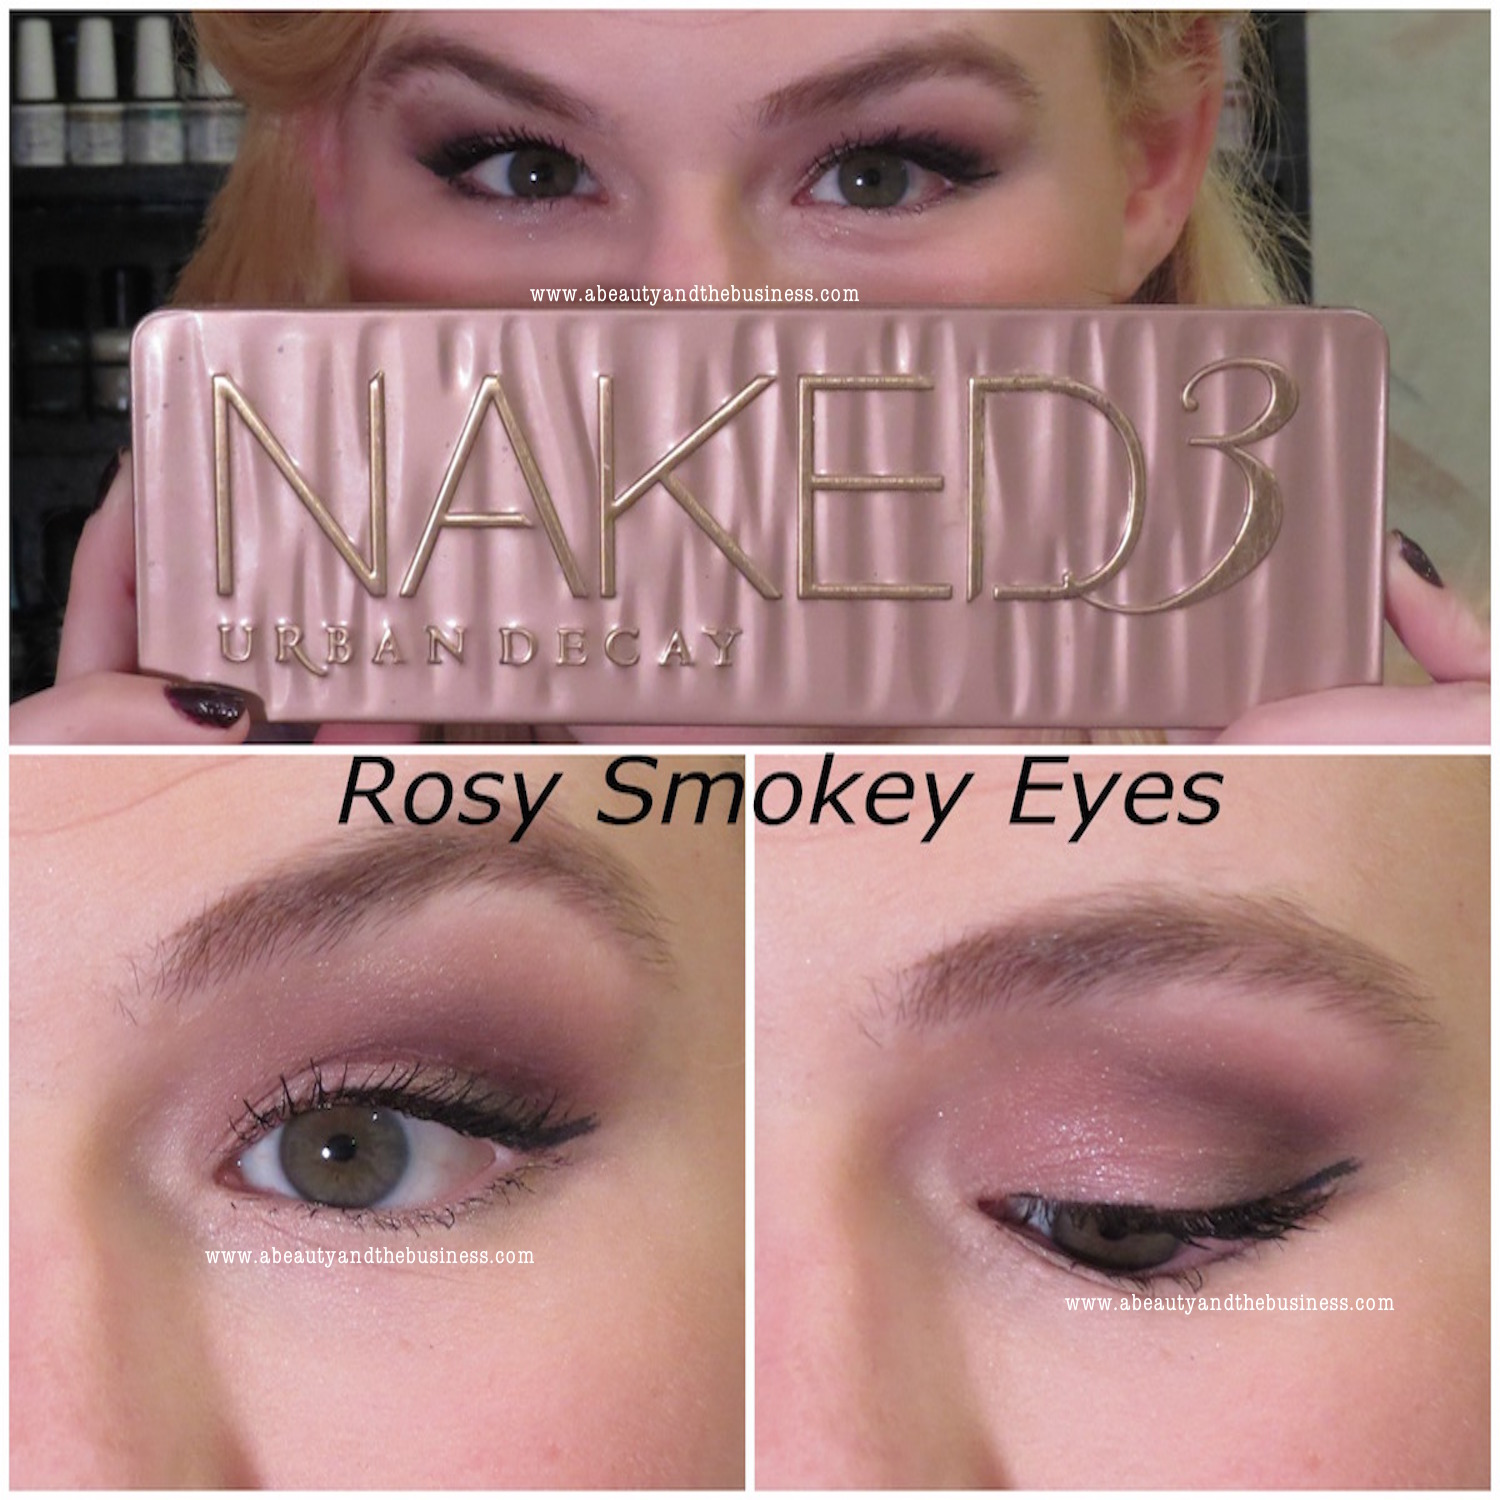 Hooded eyes makeup tutorial naked 3 a beauty and the business rosy smokey eye tutorial hooded eyes rosy smokey eye tutorial naked 3 hooded eyes baditri Choice Image